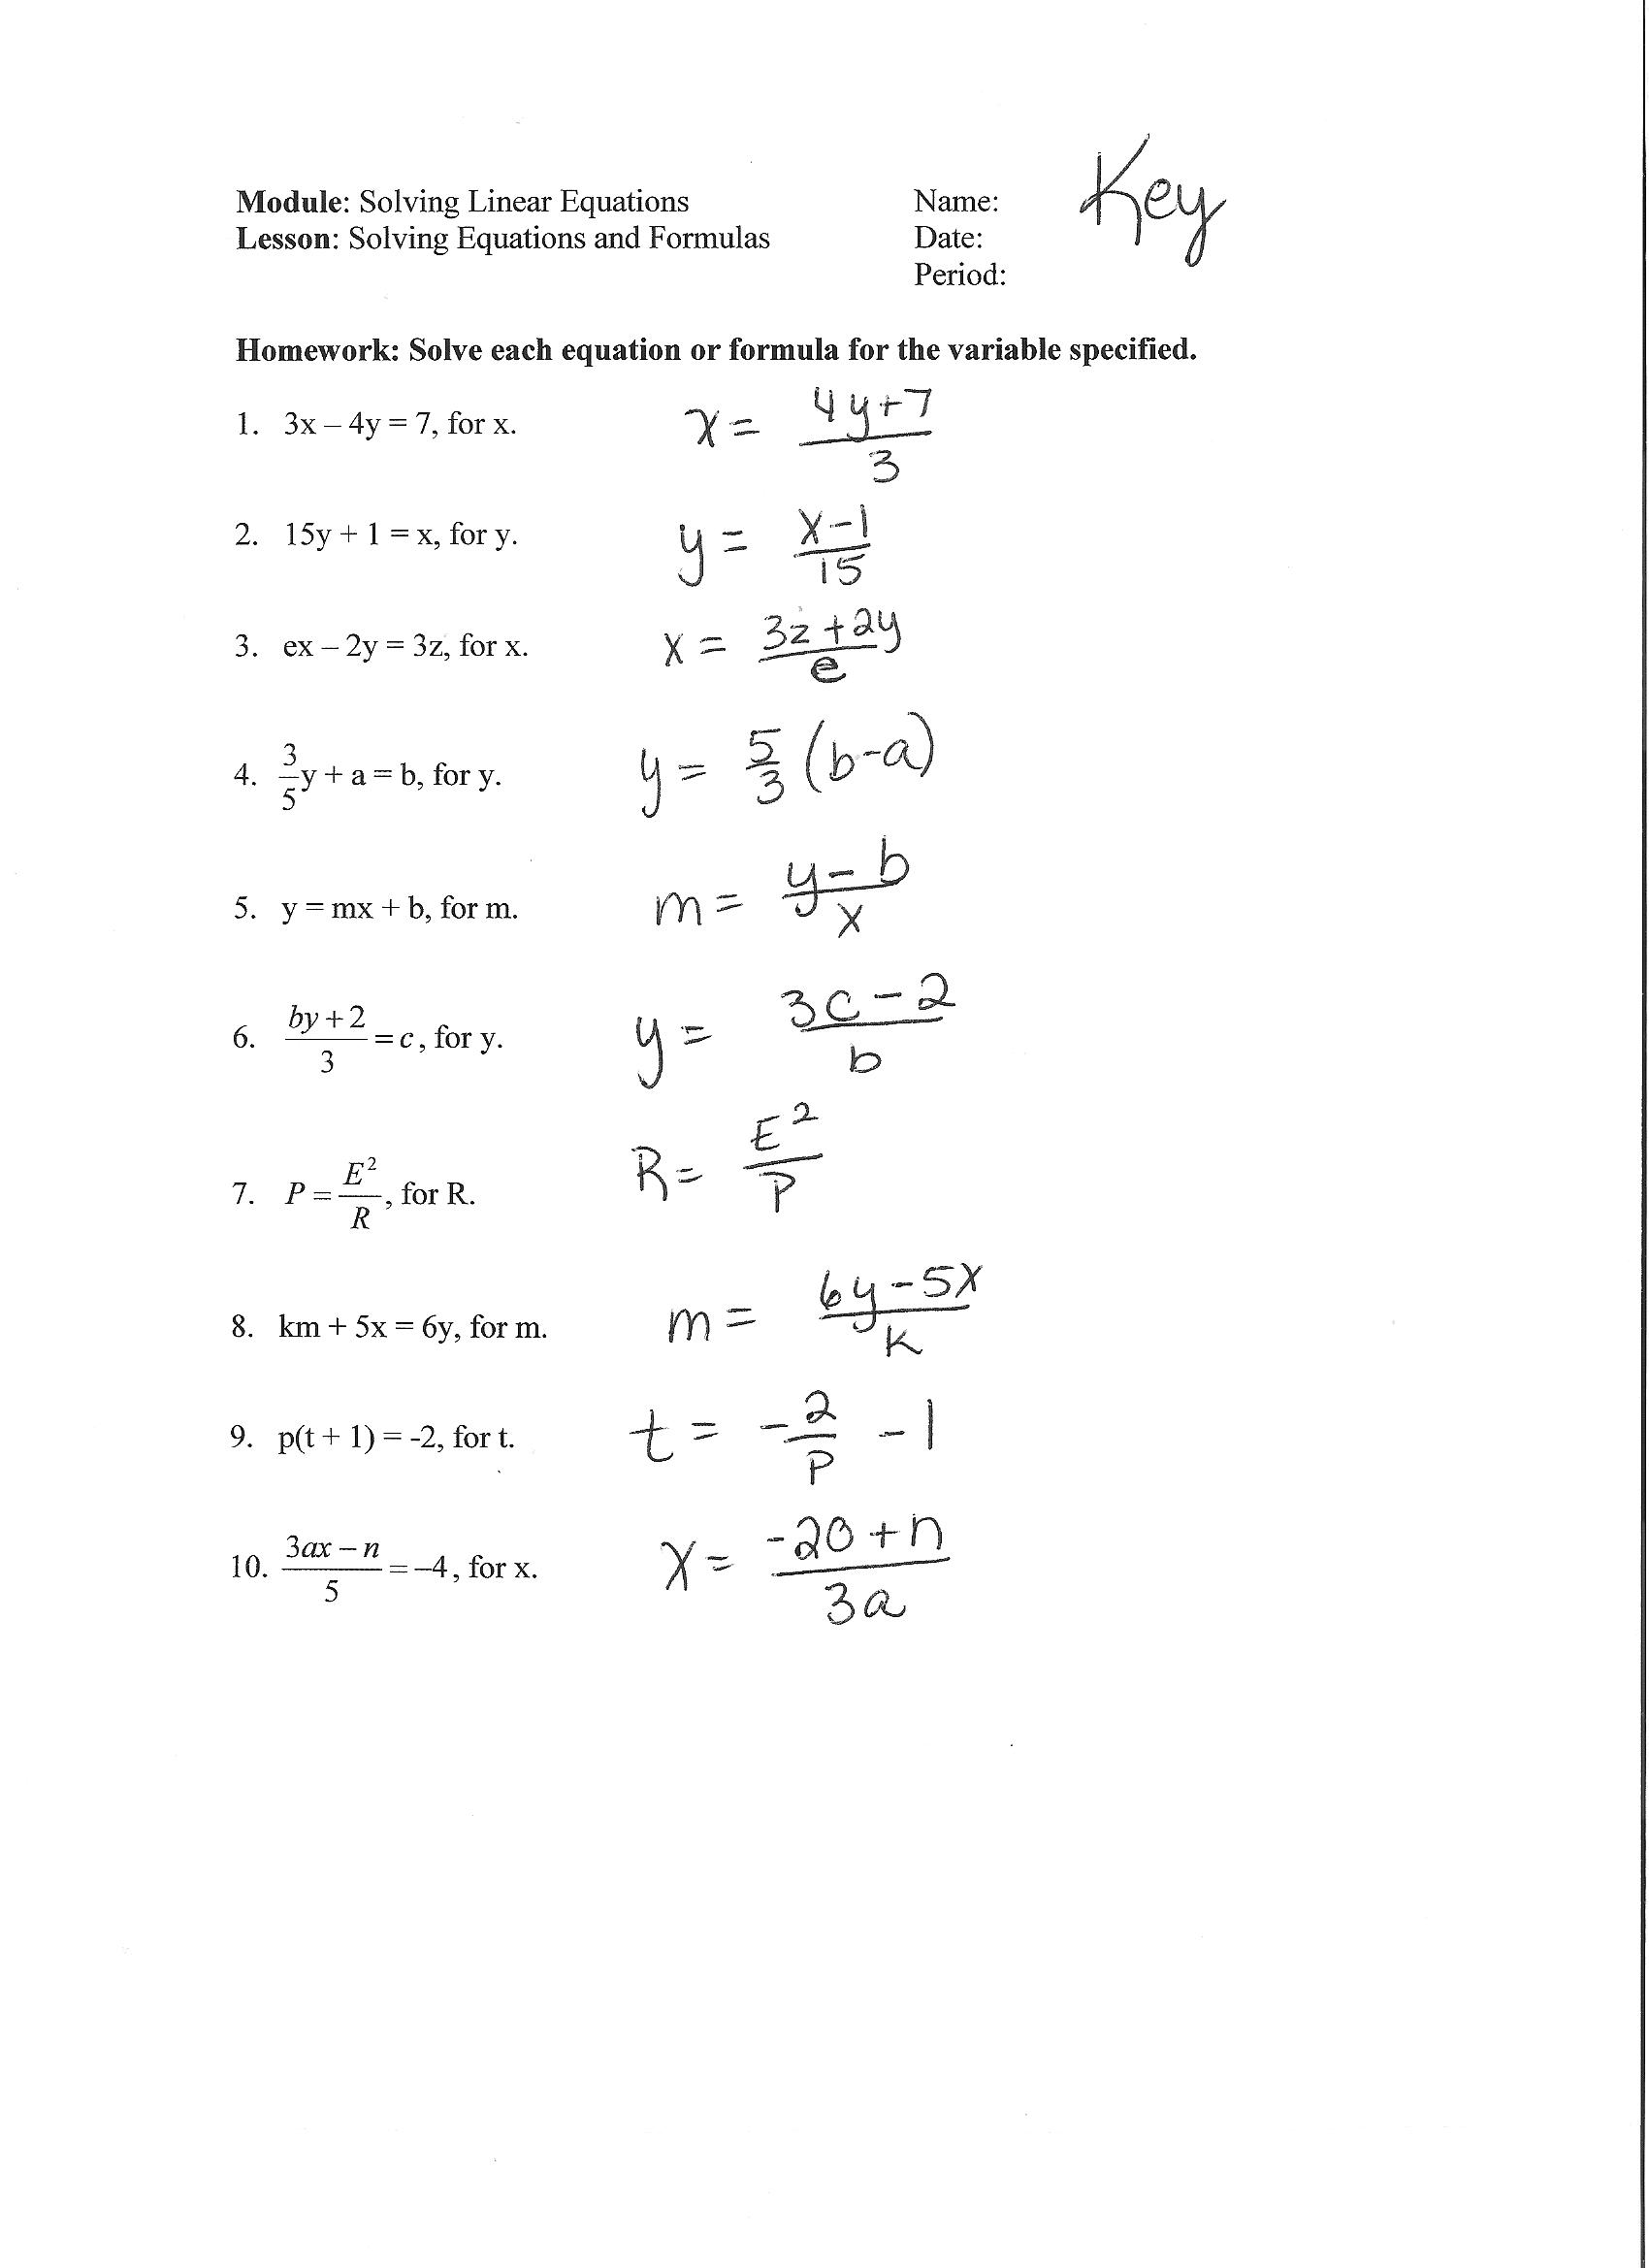 Printables Solving Multi Step Equations Worksheet Answers solving equations printable worksheets imperialdesignstudio 2338 167 kb jpeg with answers